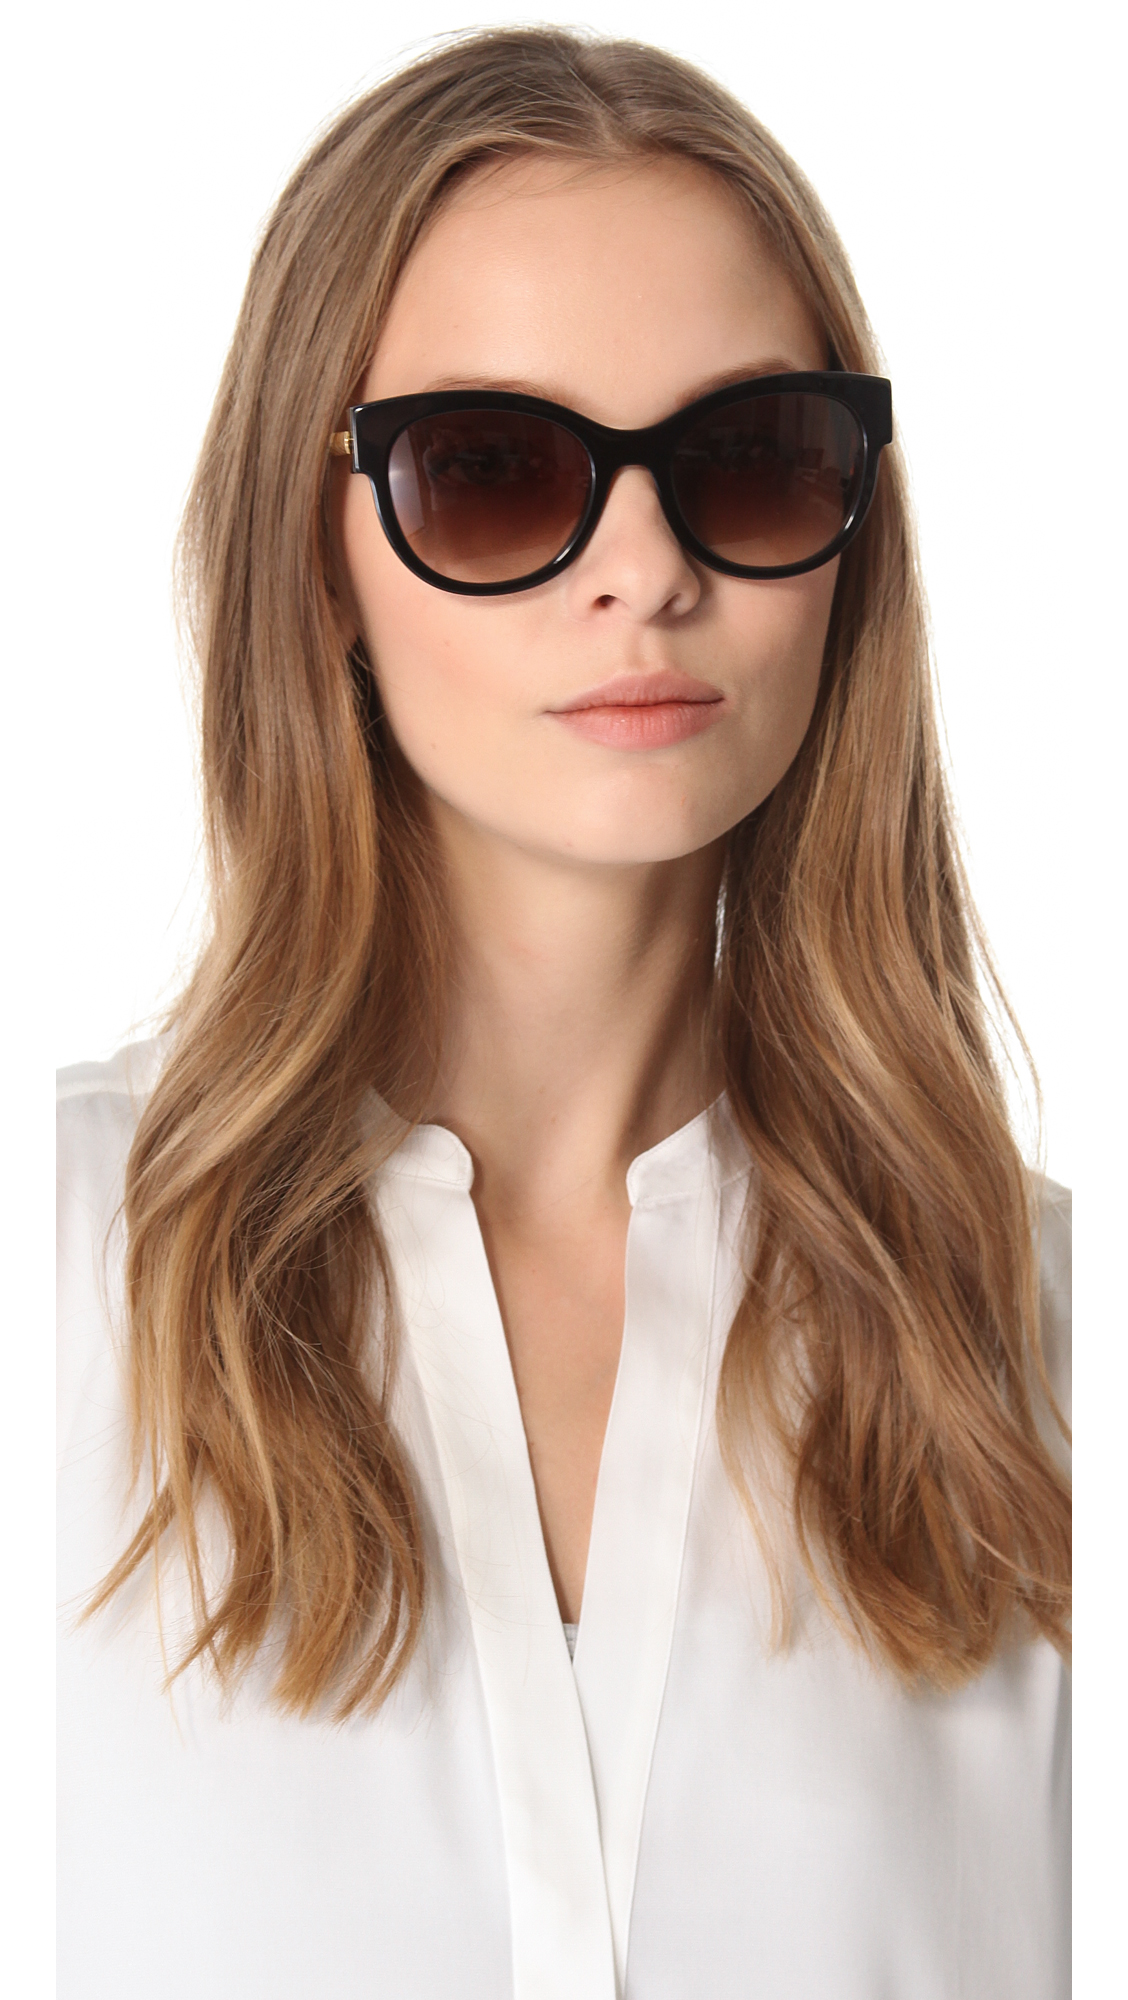 bd60b5166a Thierry Lasry Angely Sunglasses - Dark Brown in Brown - Lyst